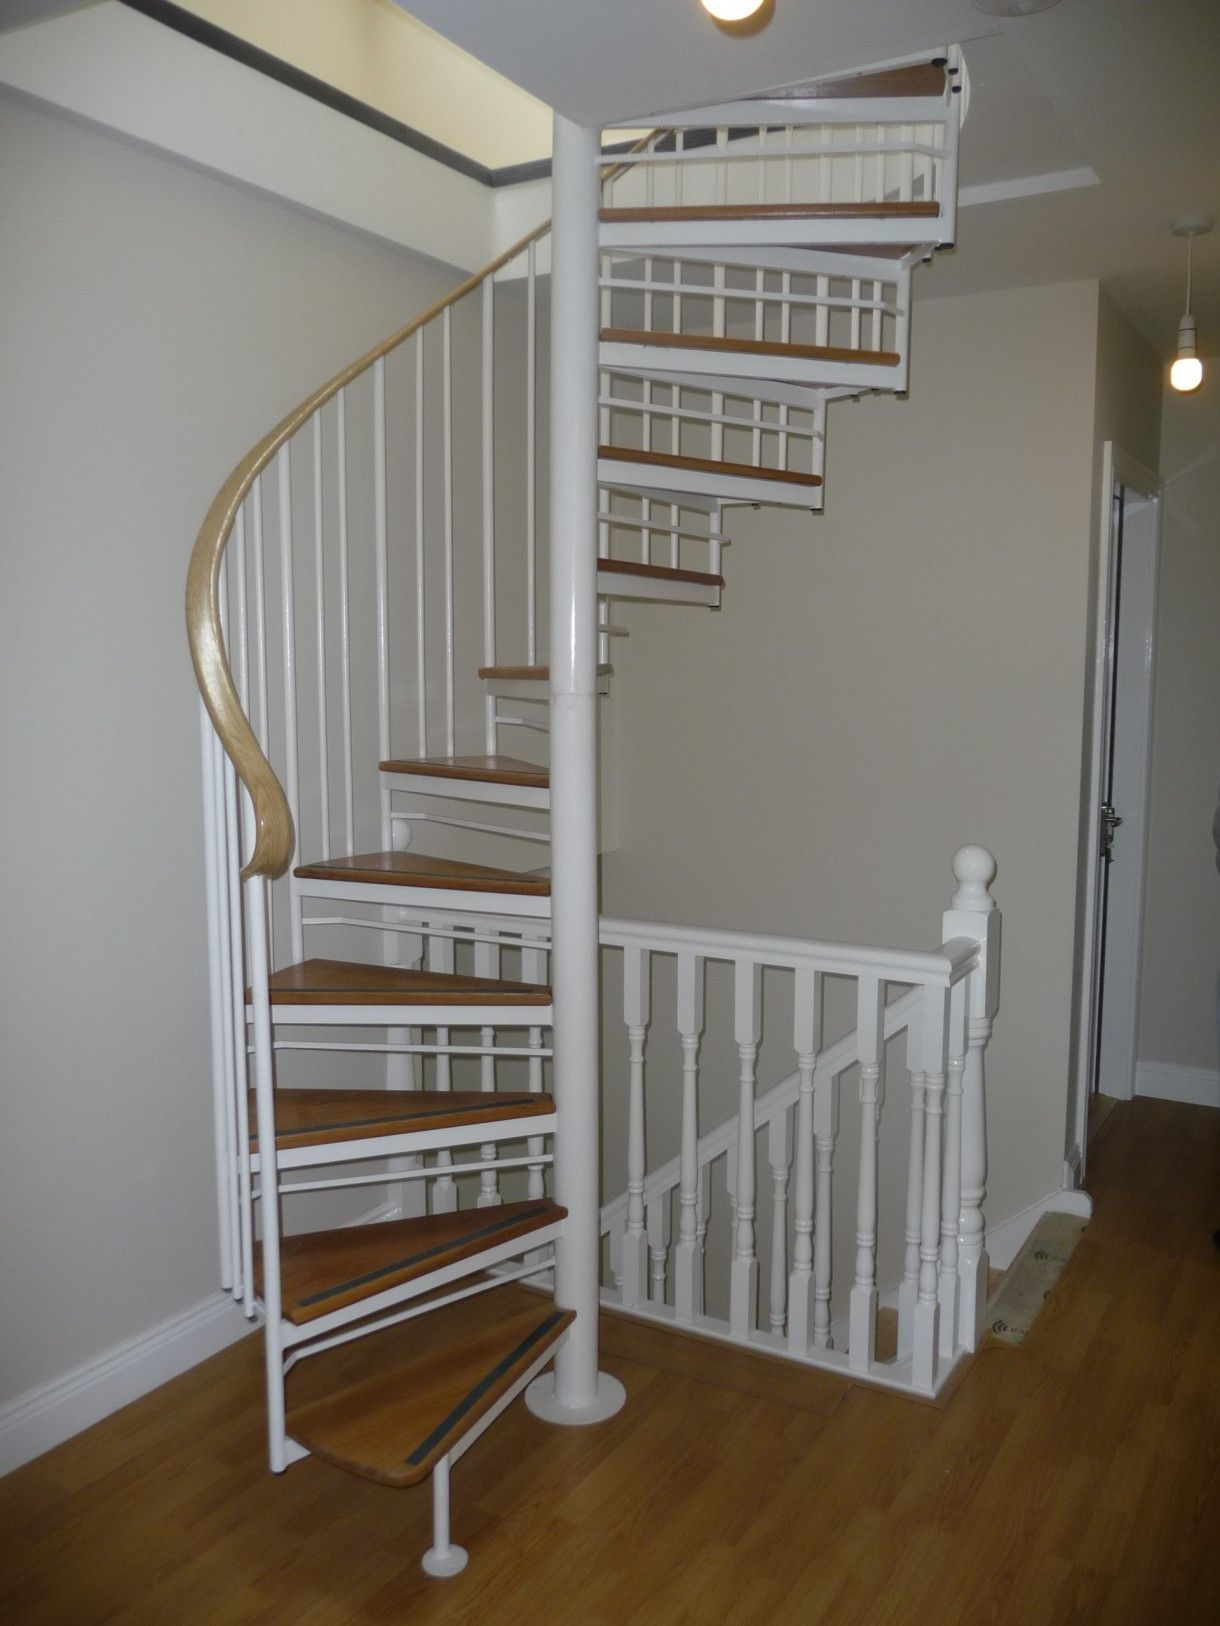 Metal Spiral Staircase For Sale Violet Hill Executive Spiral   Metal Spiral Staircase For Sale   Cast Iron   Stair Railing   Staircase Kits   Wrought Iron   Handrail